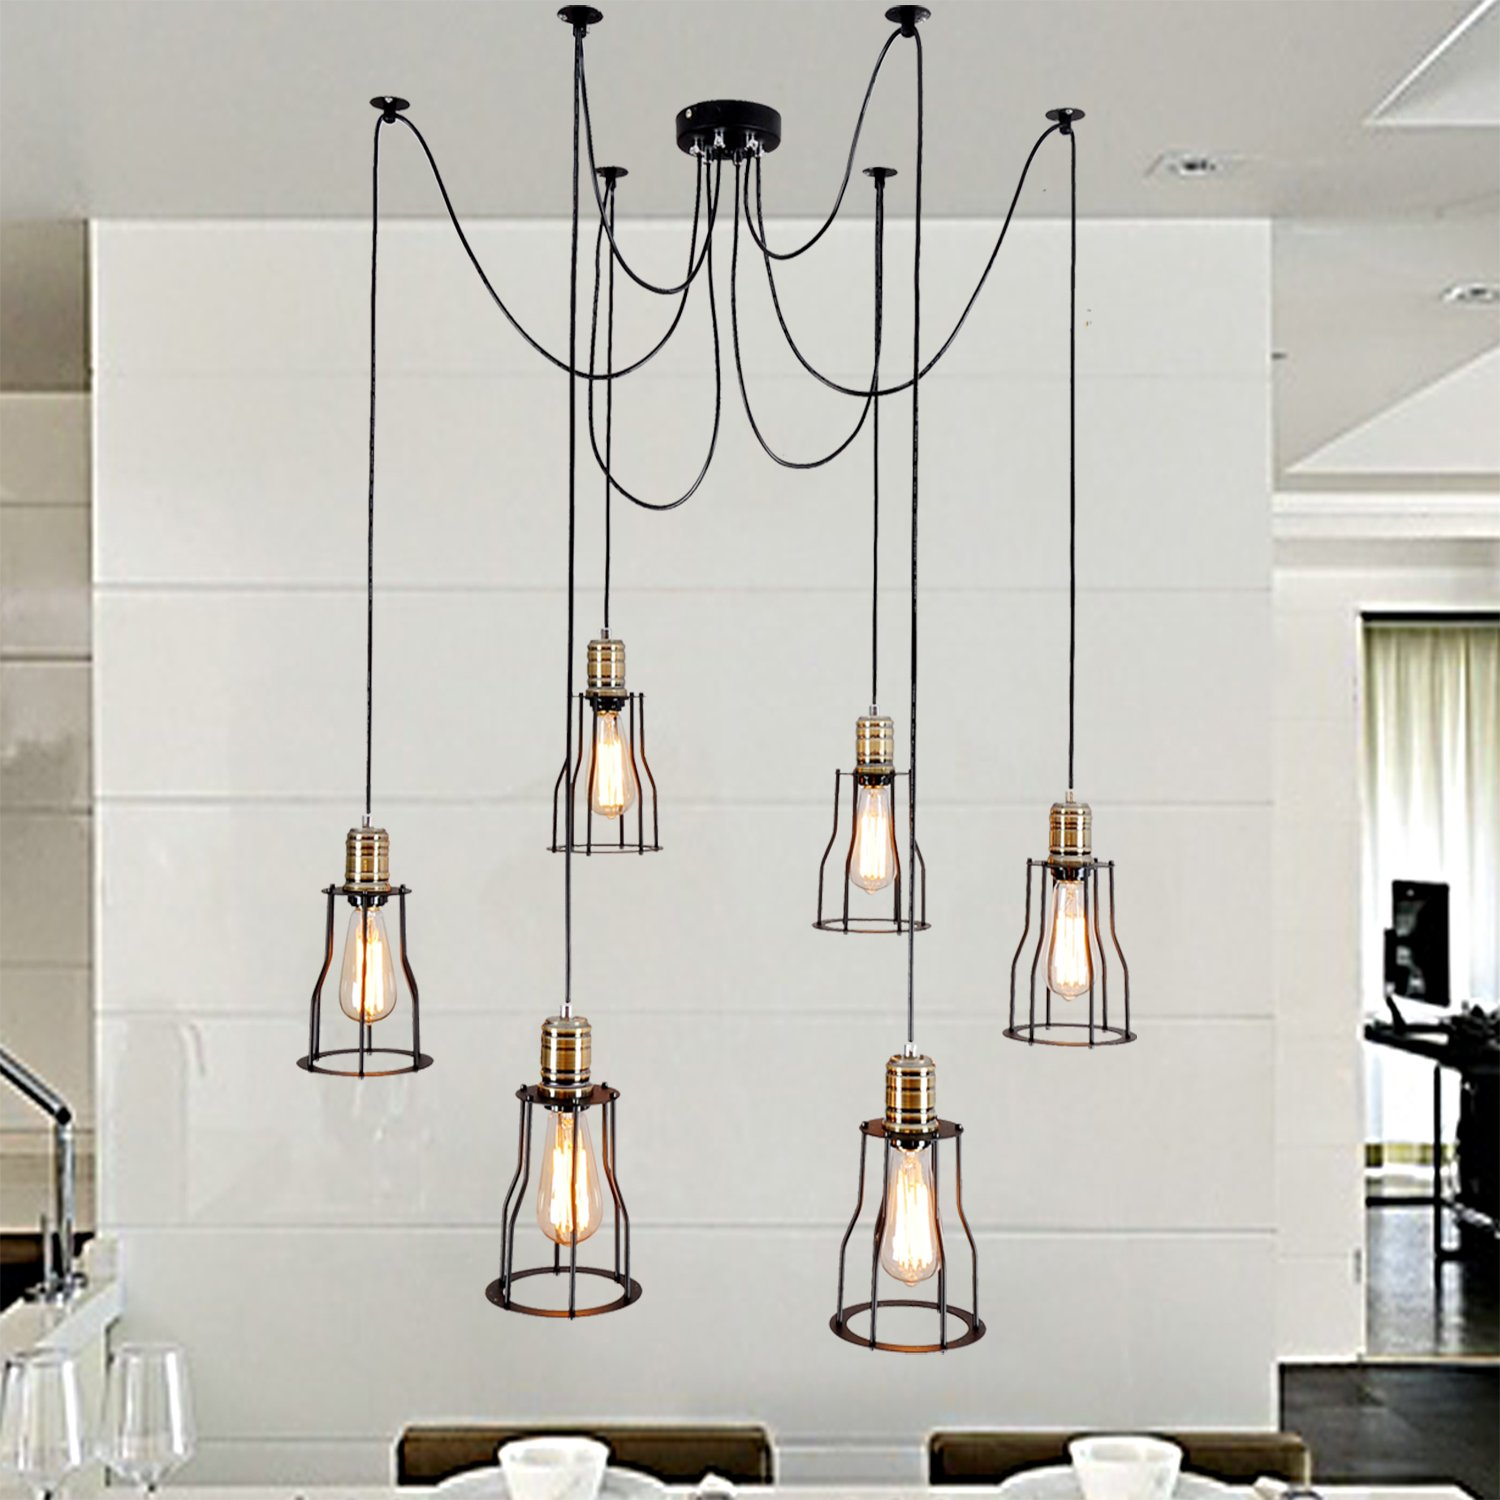 4 Styles of Industrial Chandeliers $70-$290